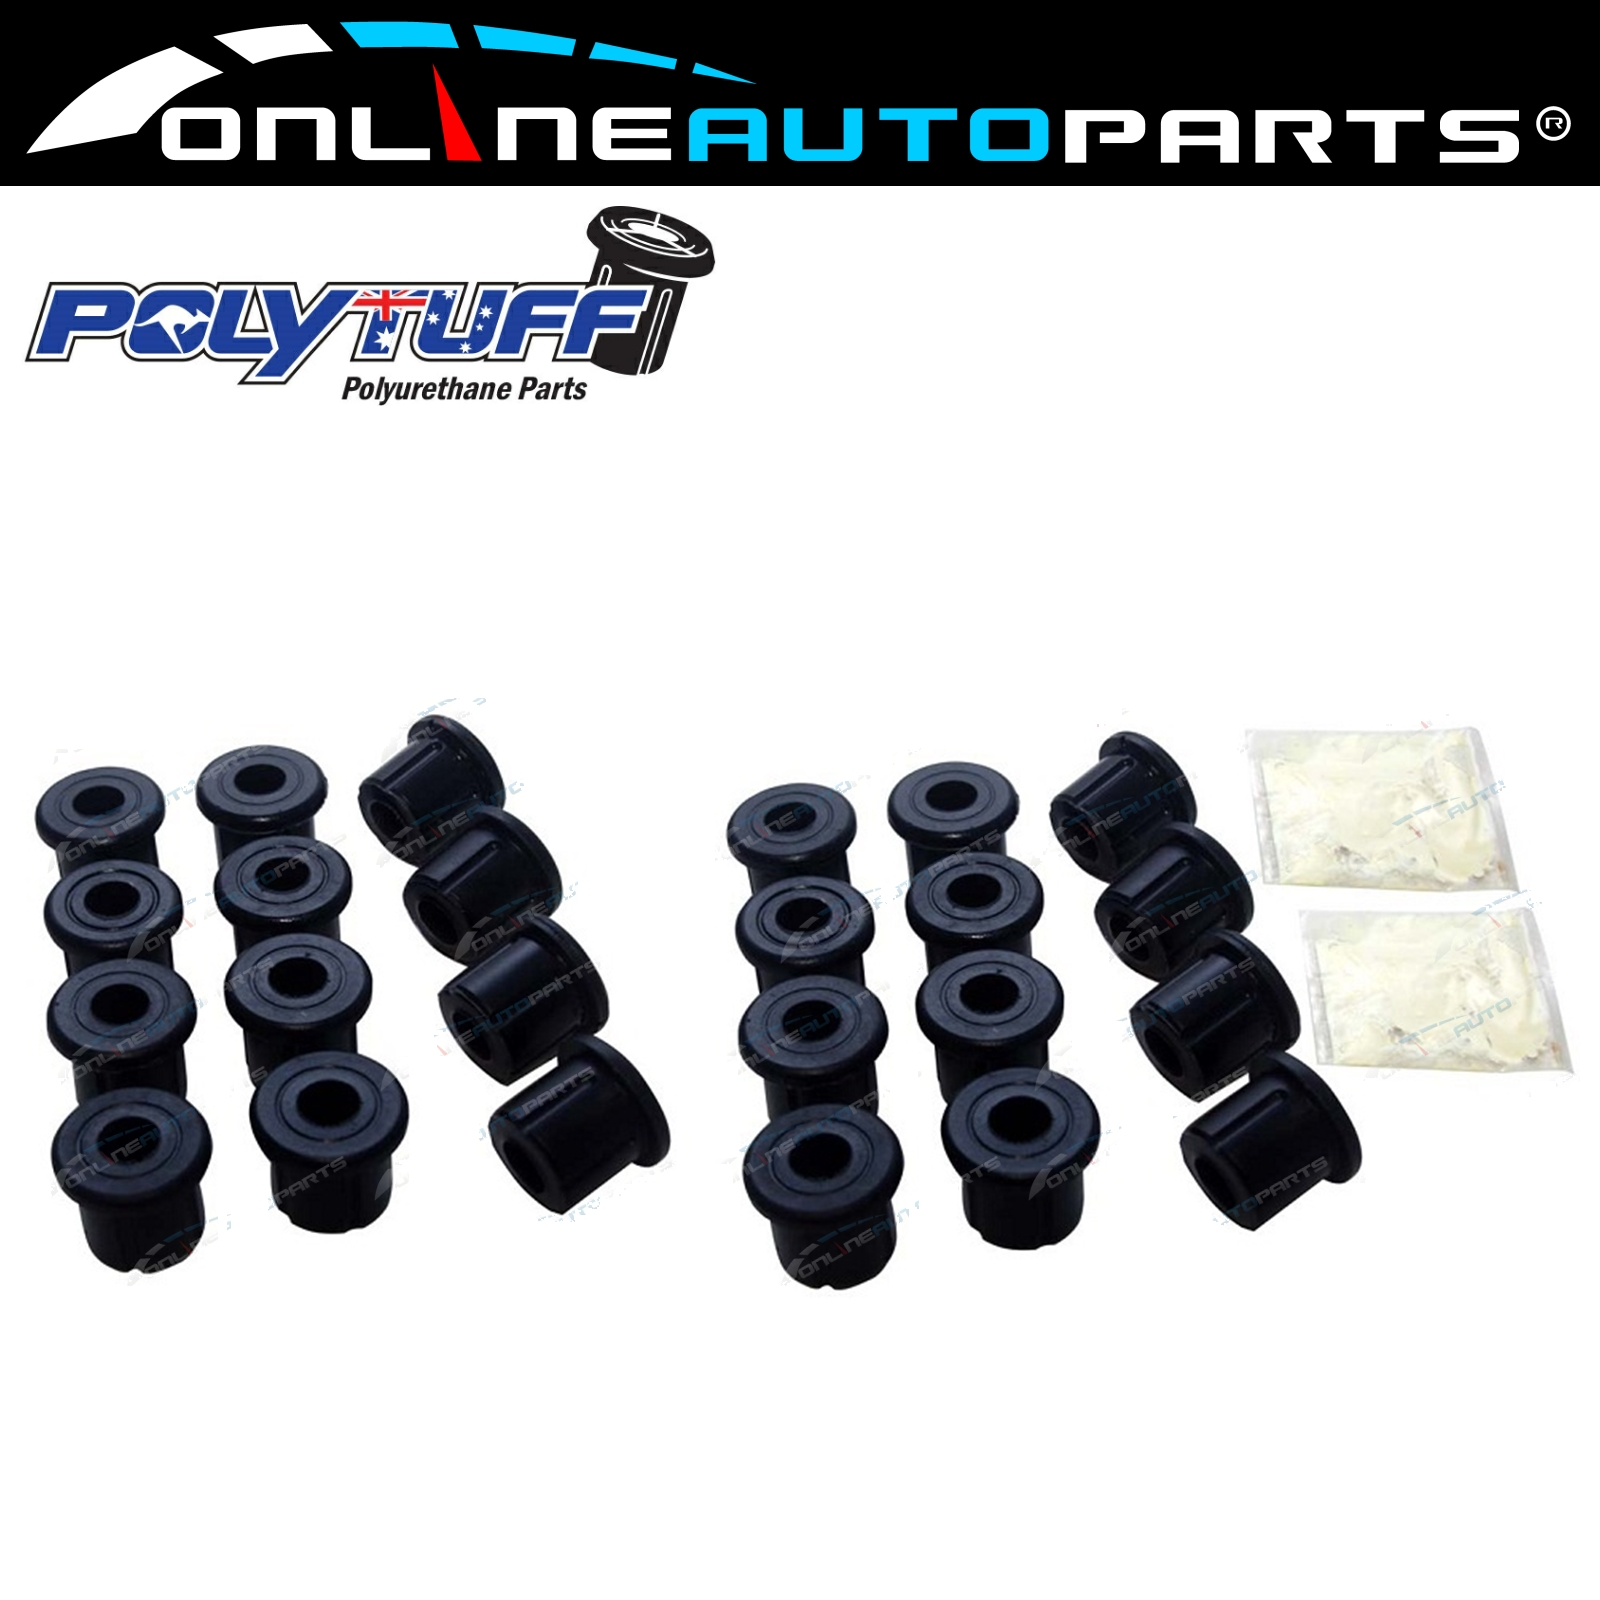 Details about Leaf Spring Bush Kit suits Landcruiser 60 Series FJ60 FJ62  HJ60 HJ61 Shackle